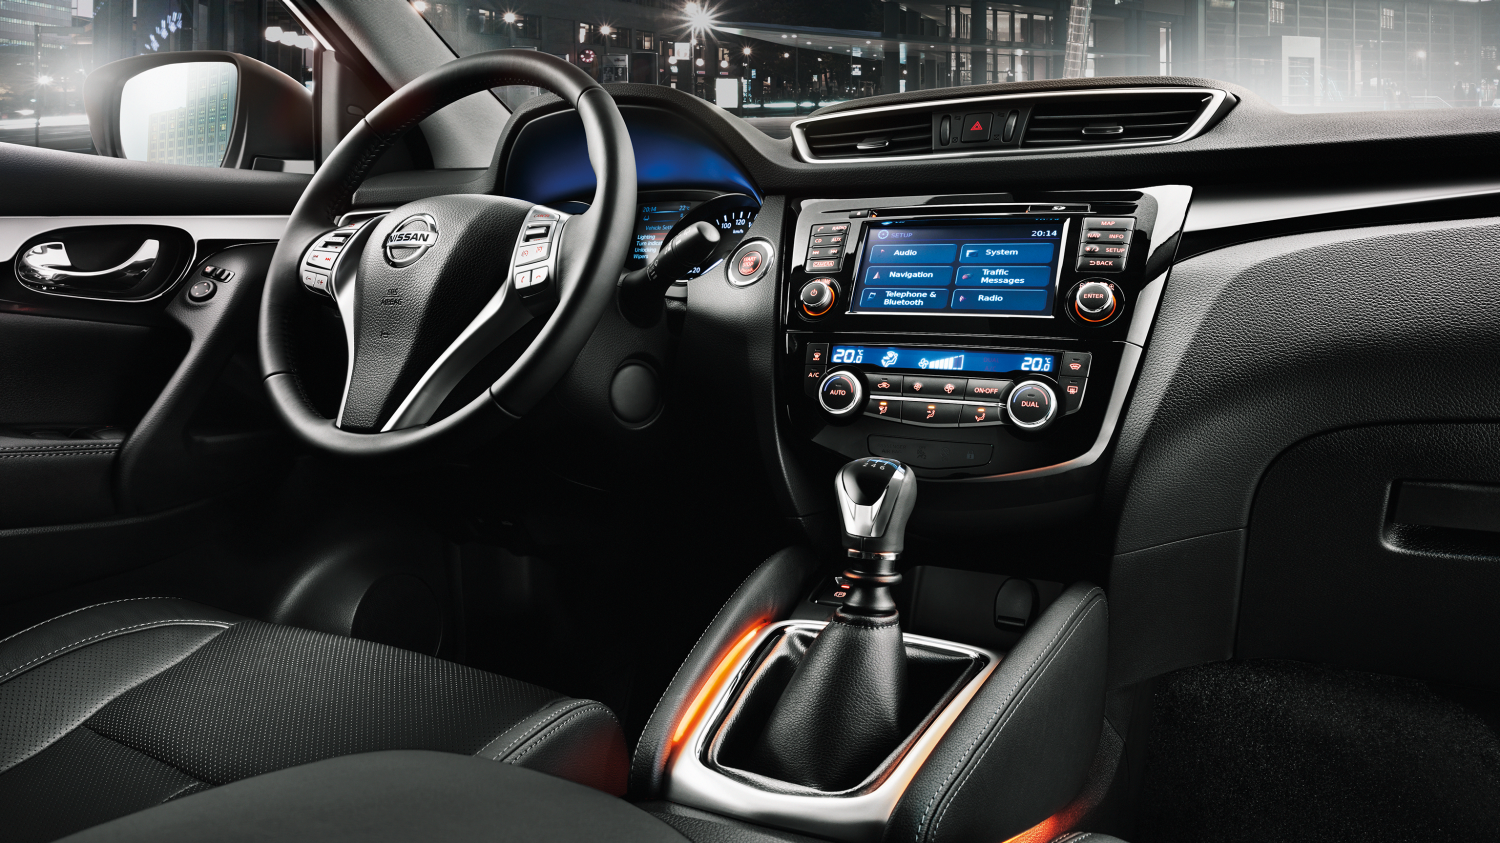 Nissan QASHQAI - Interieur design - Dashboard